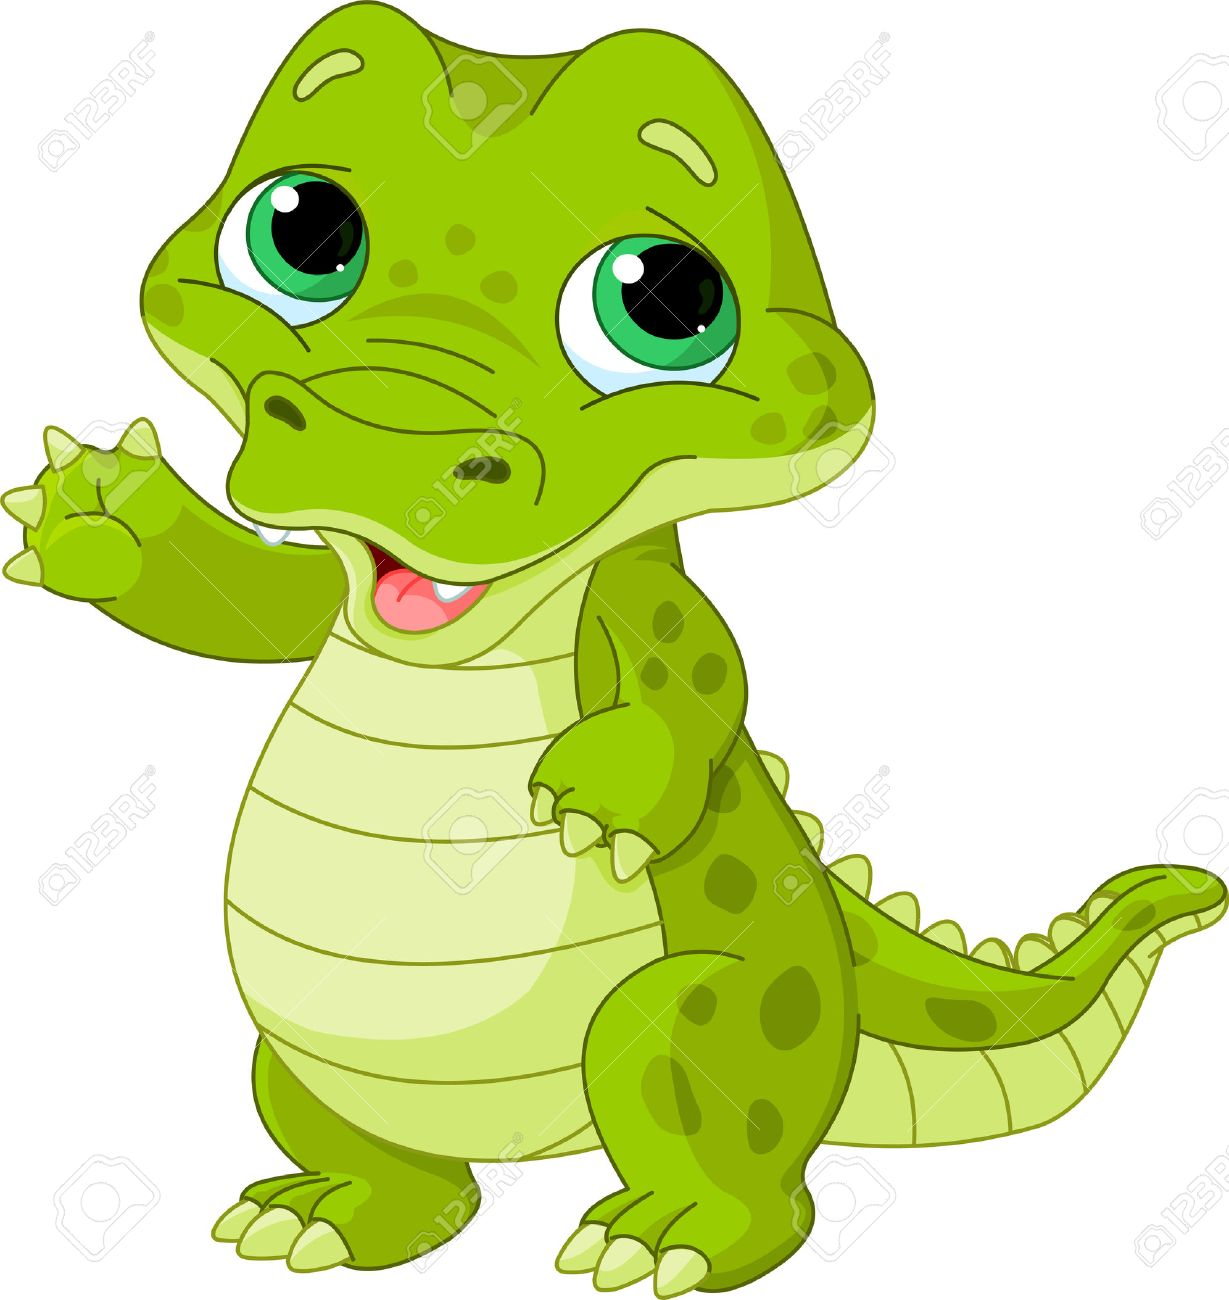 Illustration Of Very Cute Baby Alligator Royalty Free Cliparts